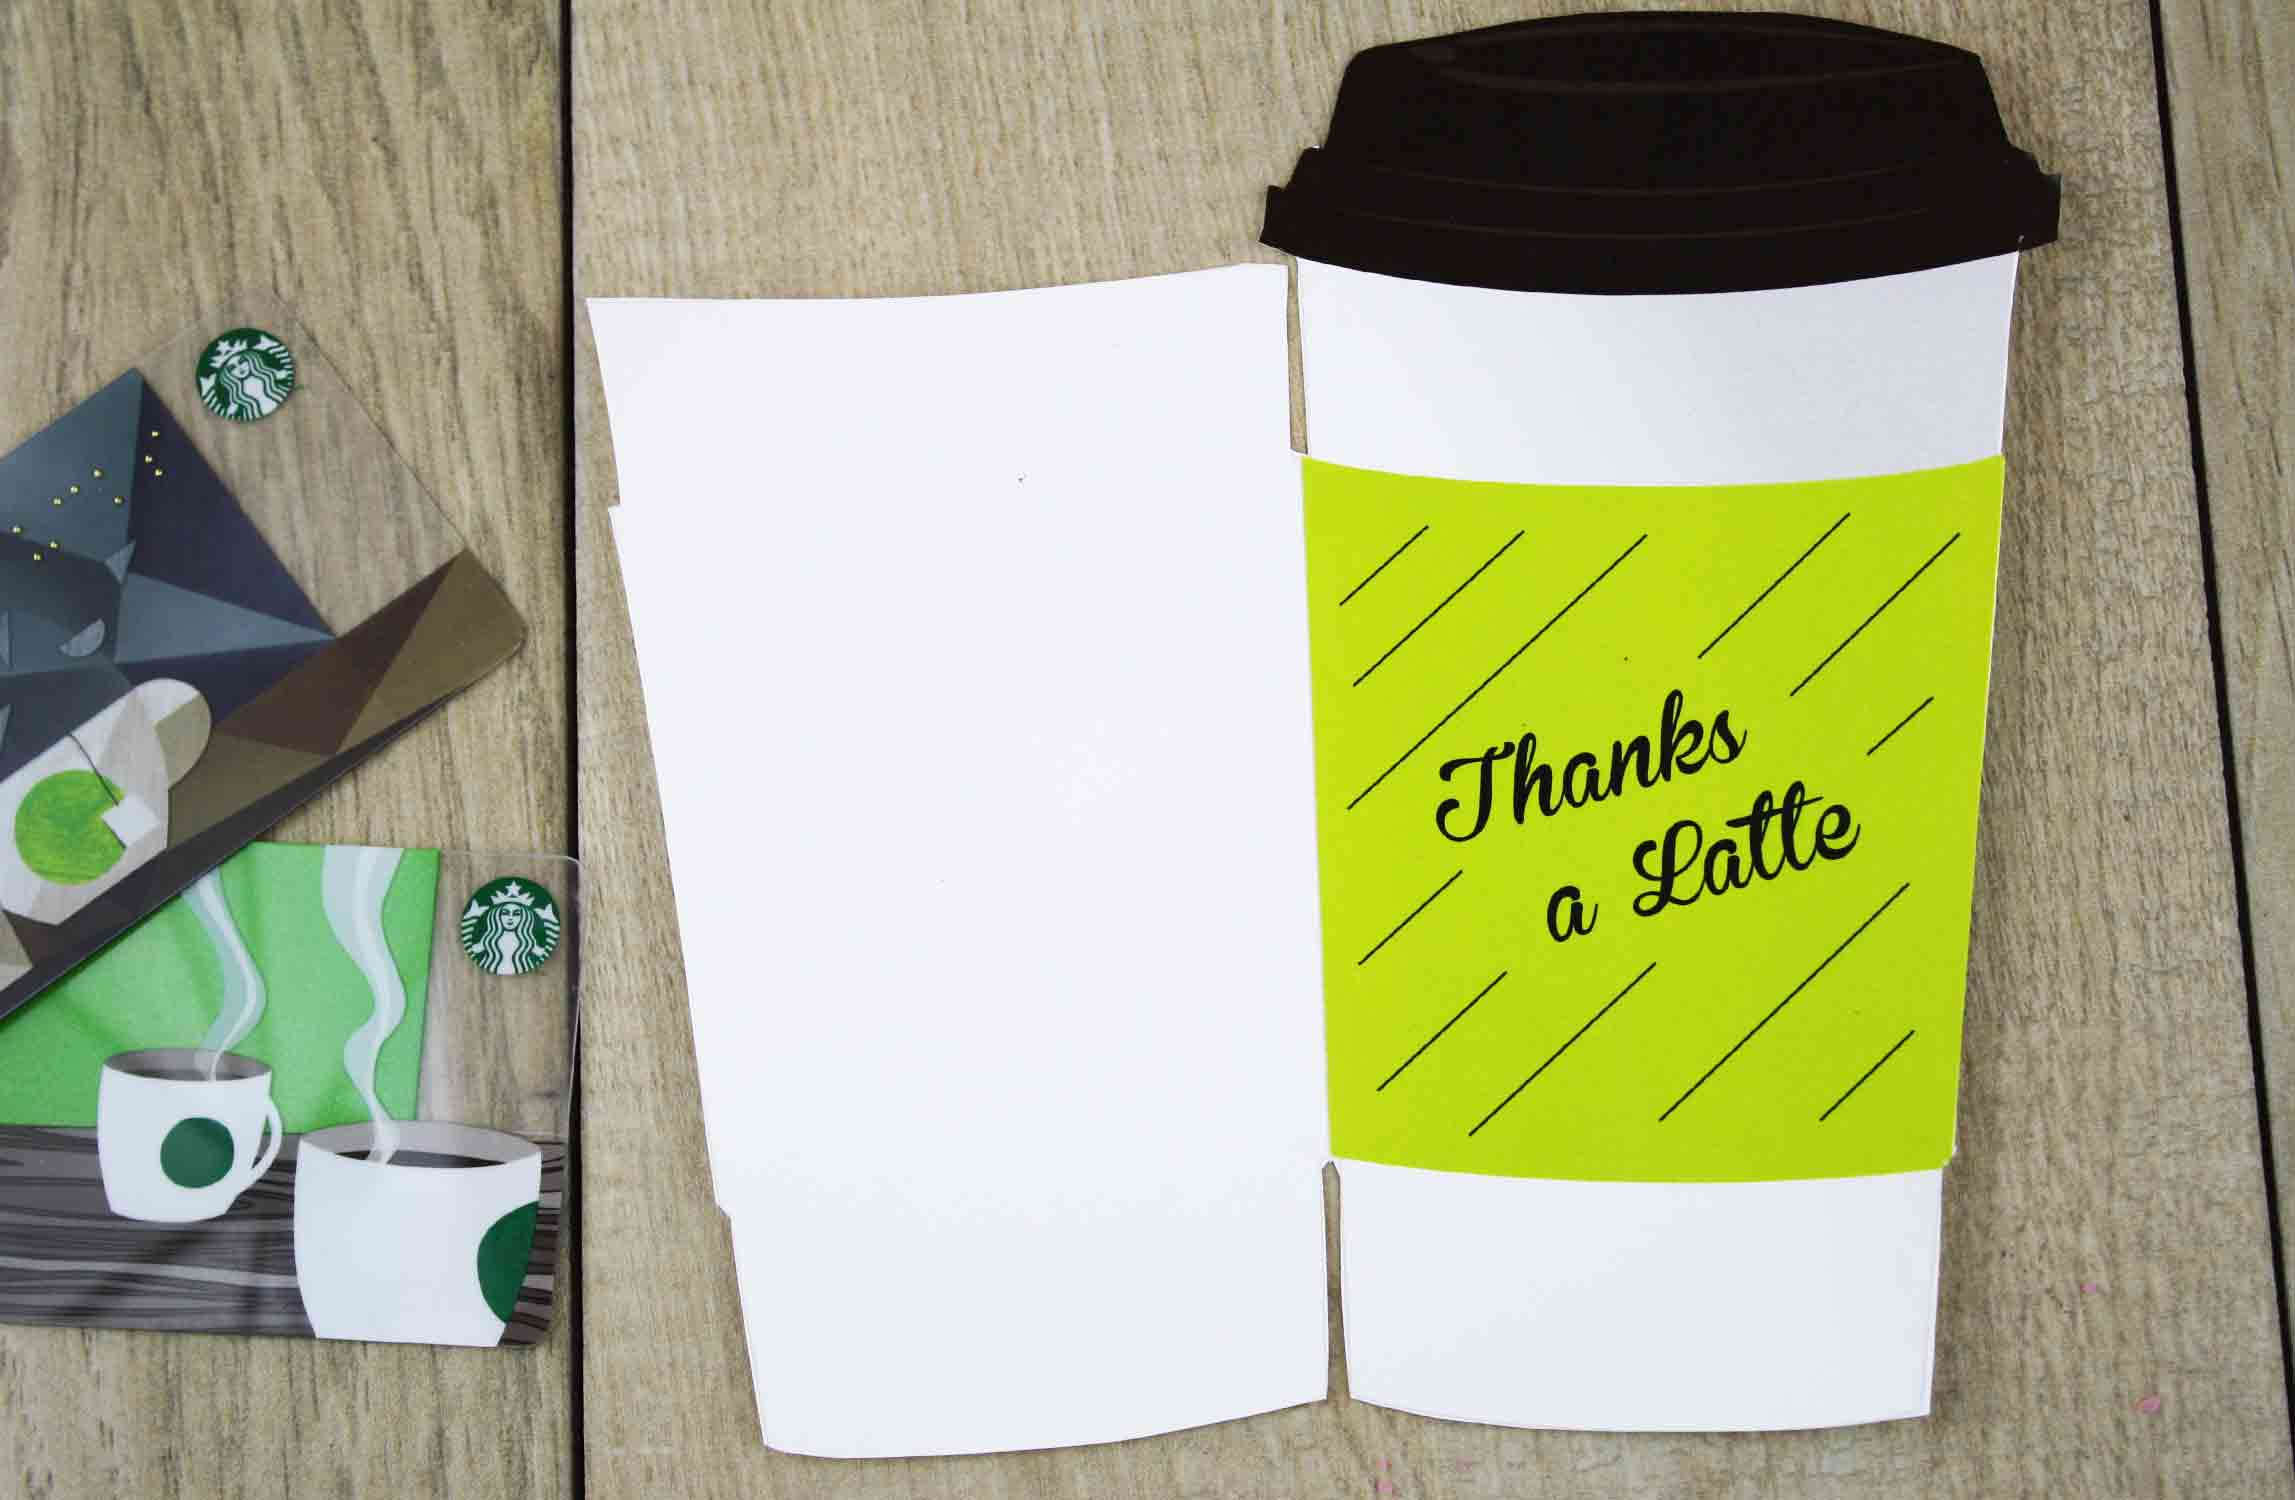 cut-out latte cup to hold a gift card